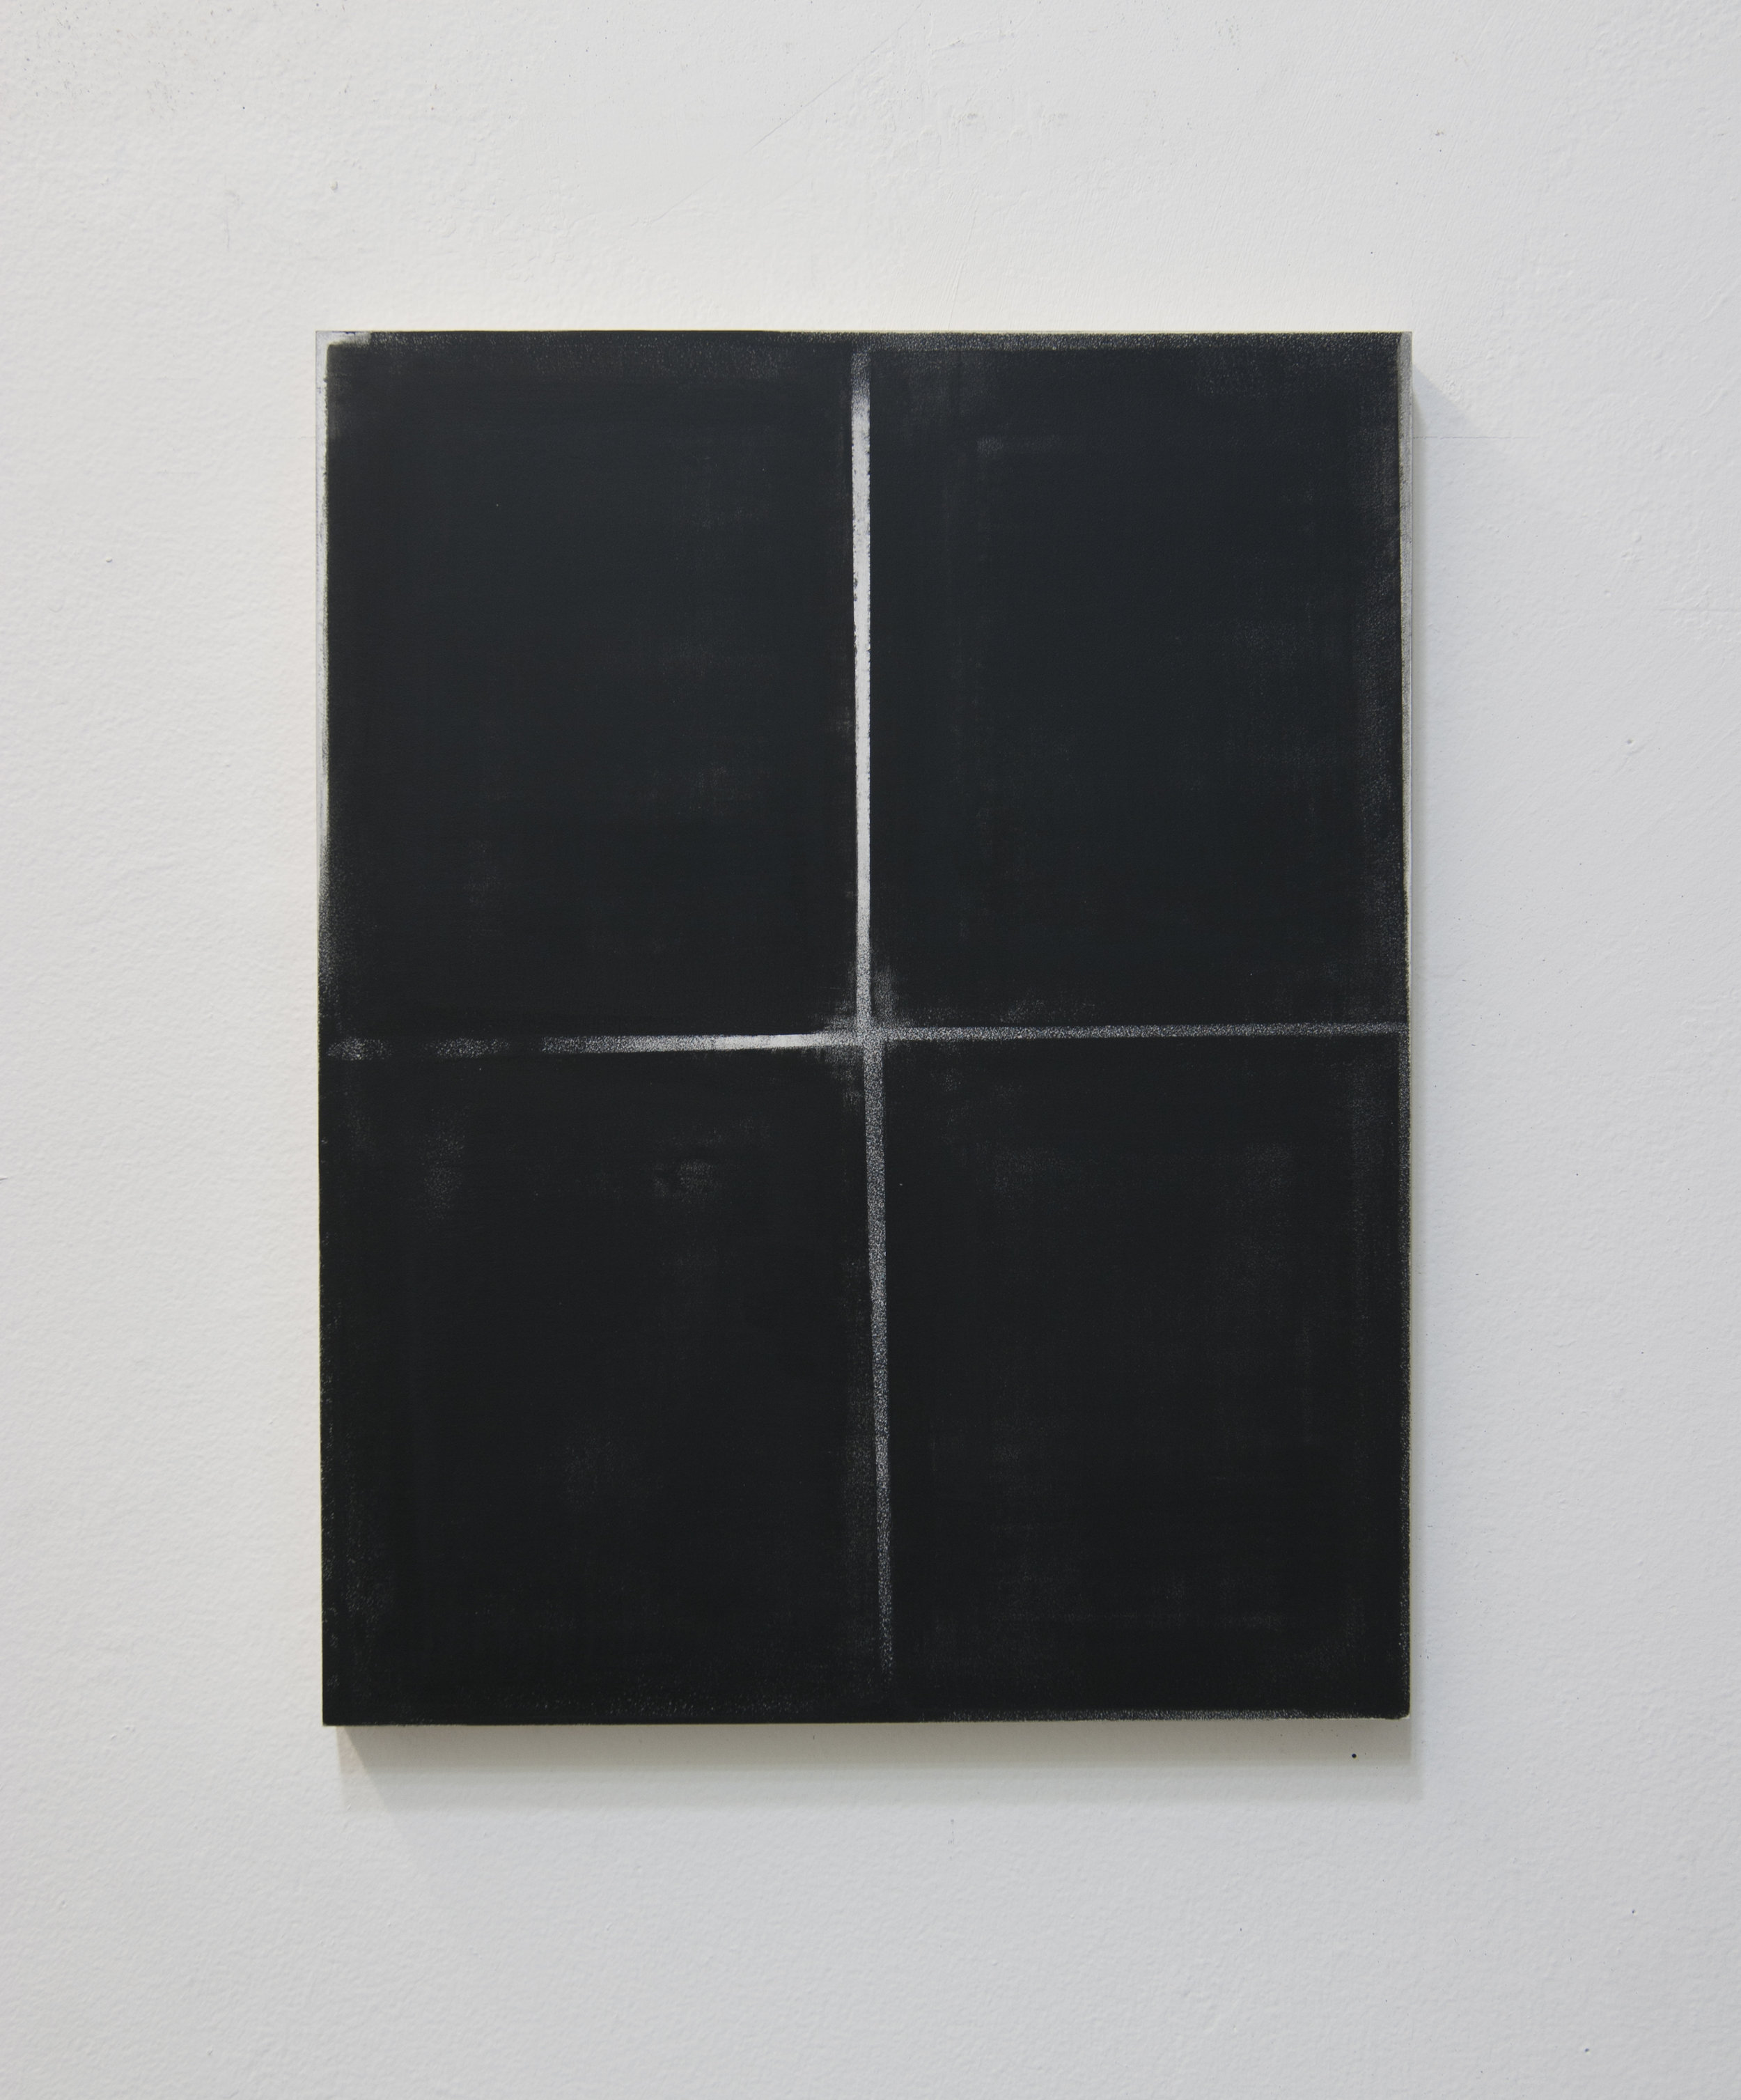 Untitled (Quadrants), 2012  Acrylic on panel, 14 x 11 inches